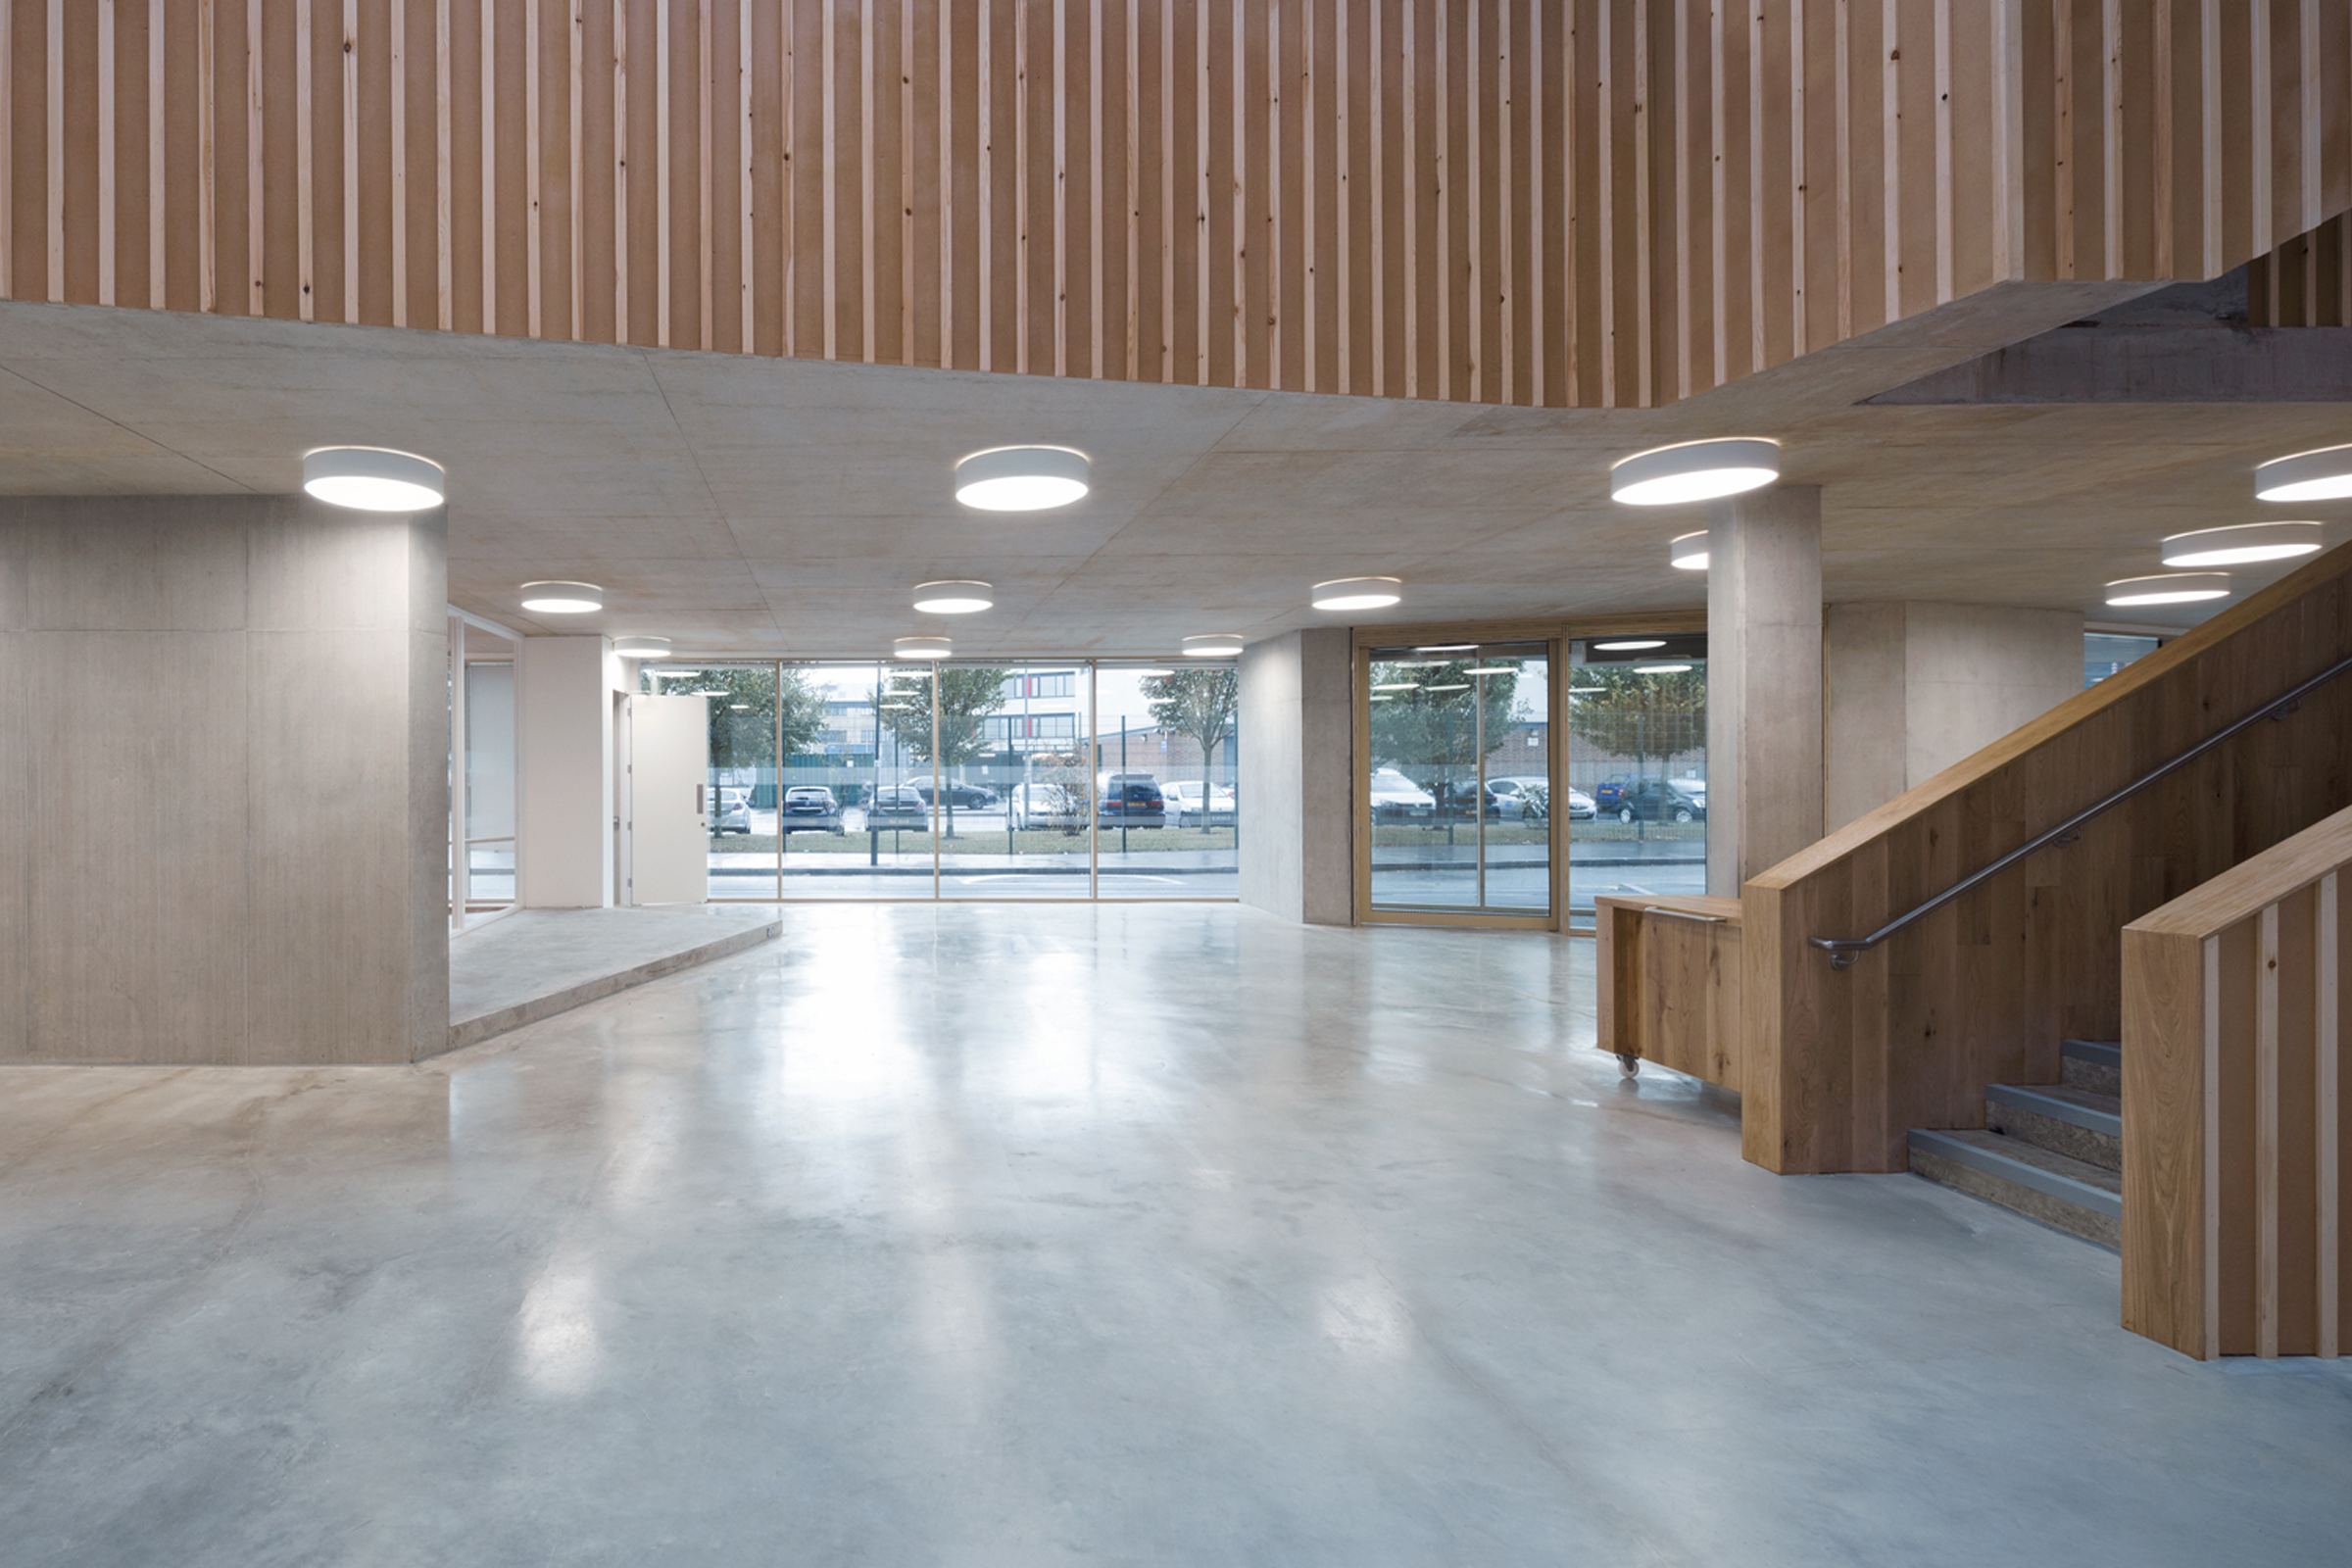 Flexible workspace for organisations working in social justice and human rights , as well as an events space and a community learning resource  Vauxhall, London   Ethical Property Company August 2014 £5M